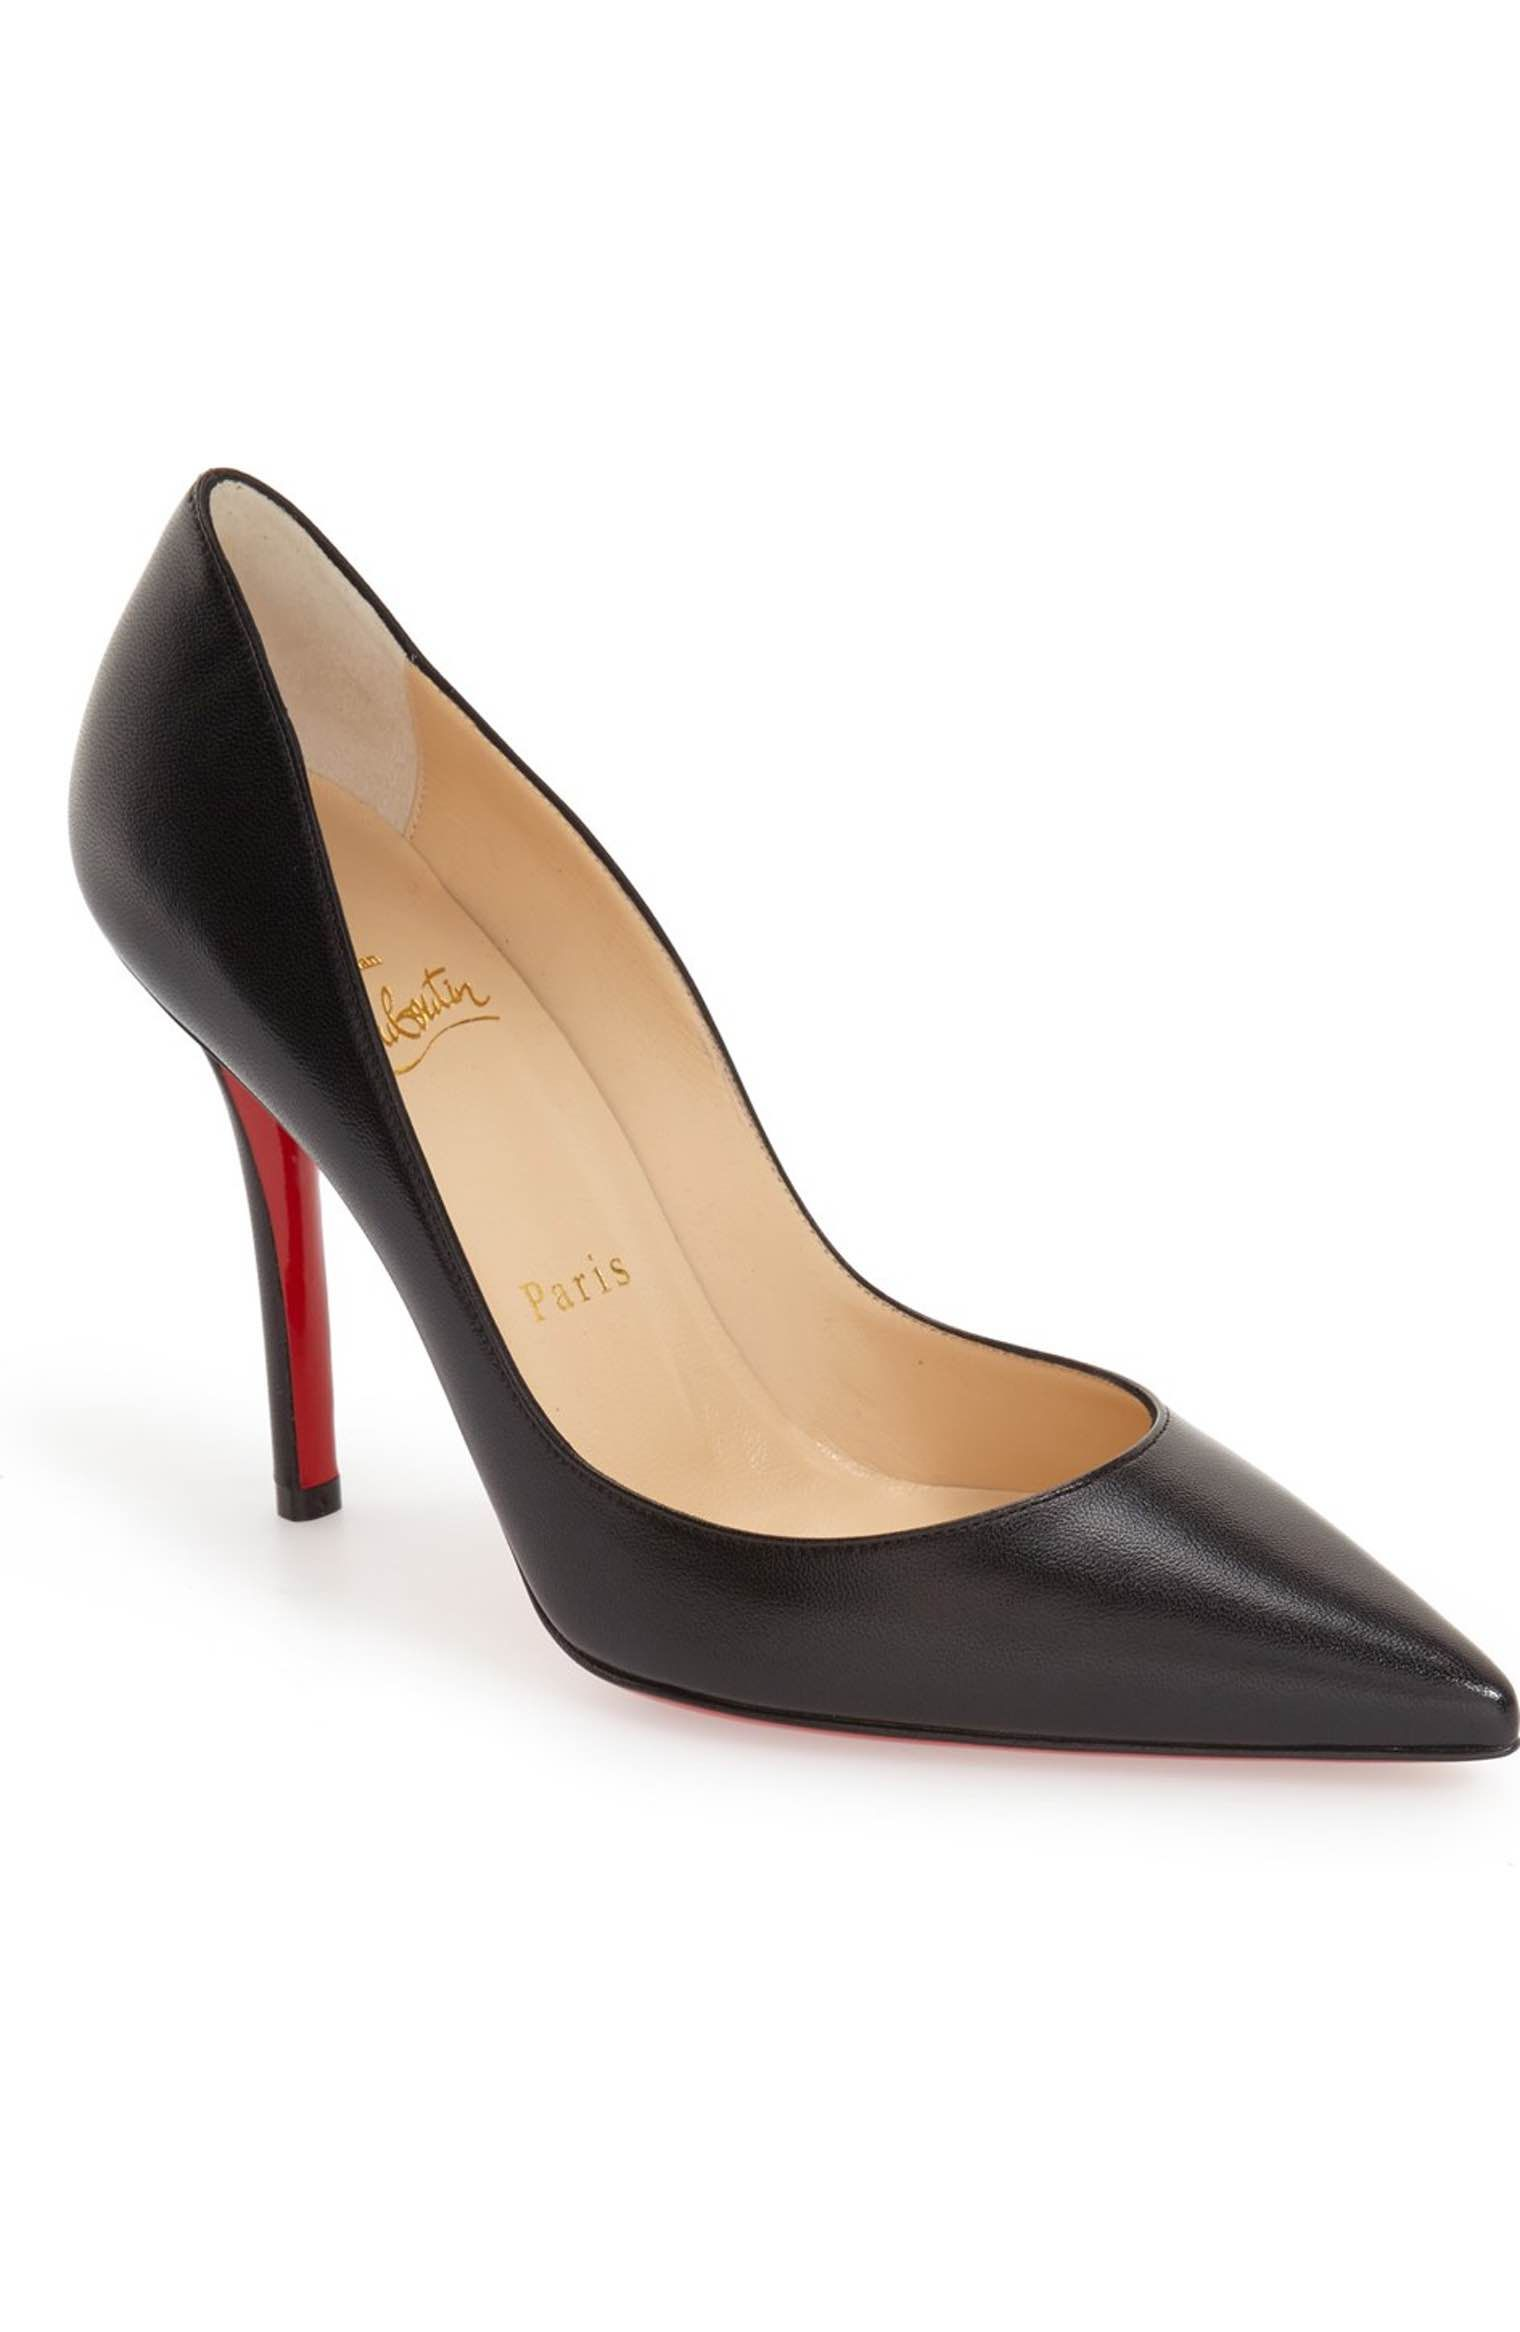 7d684cf51dfc Main Image - Christian Louboutin  Apostrophy  Pointy Toe Pump ...